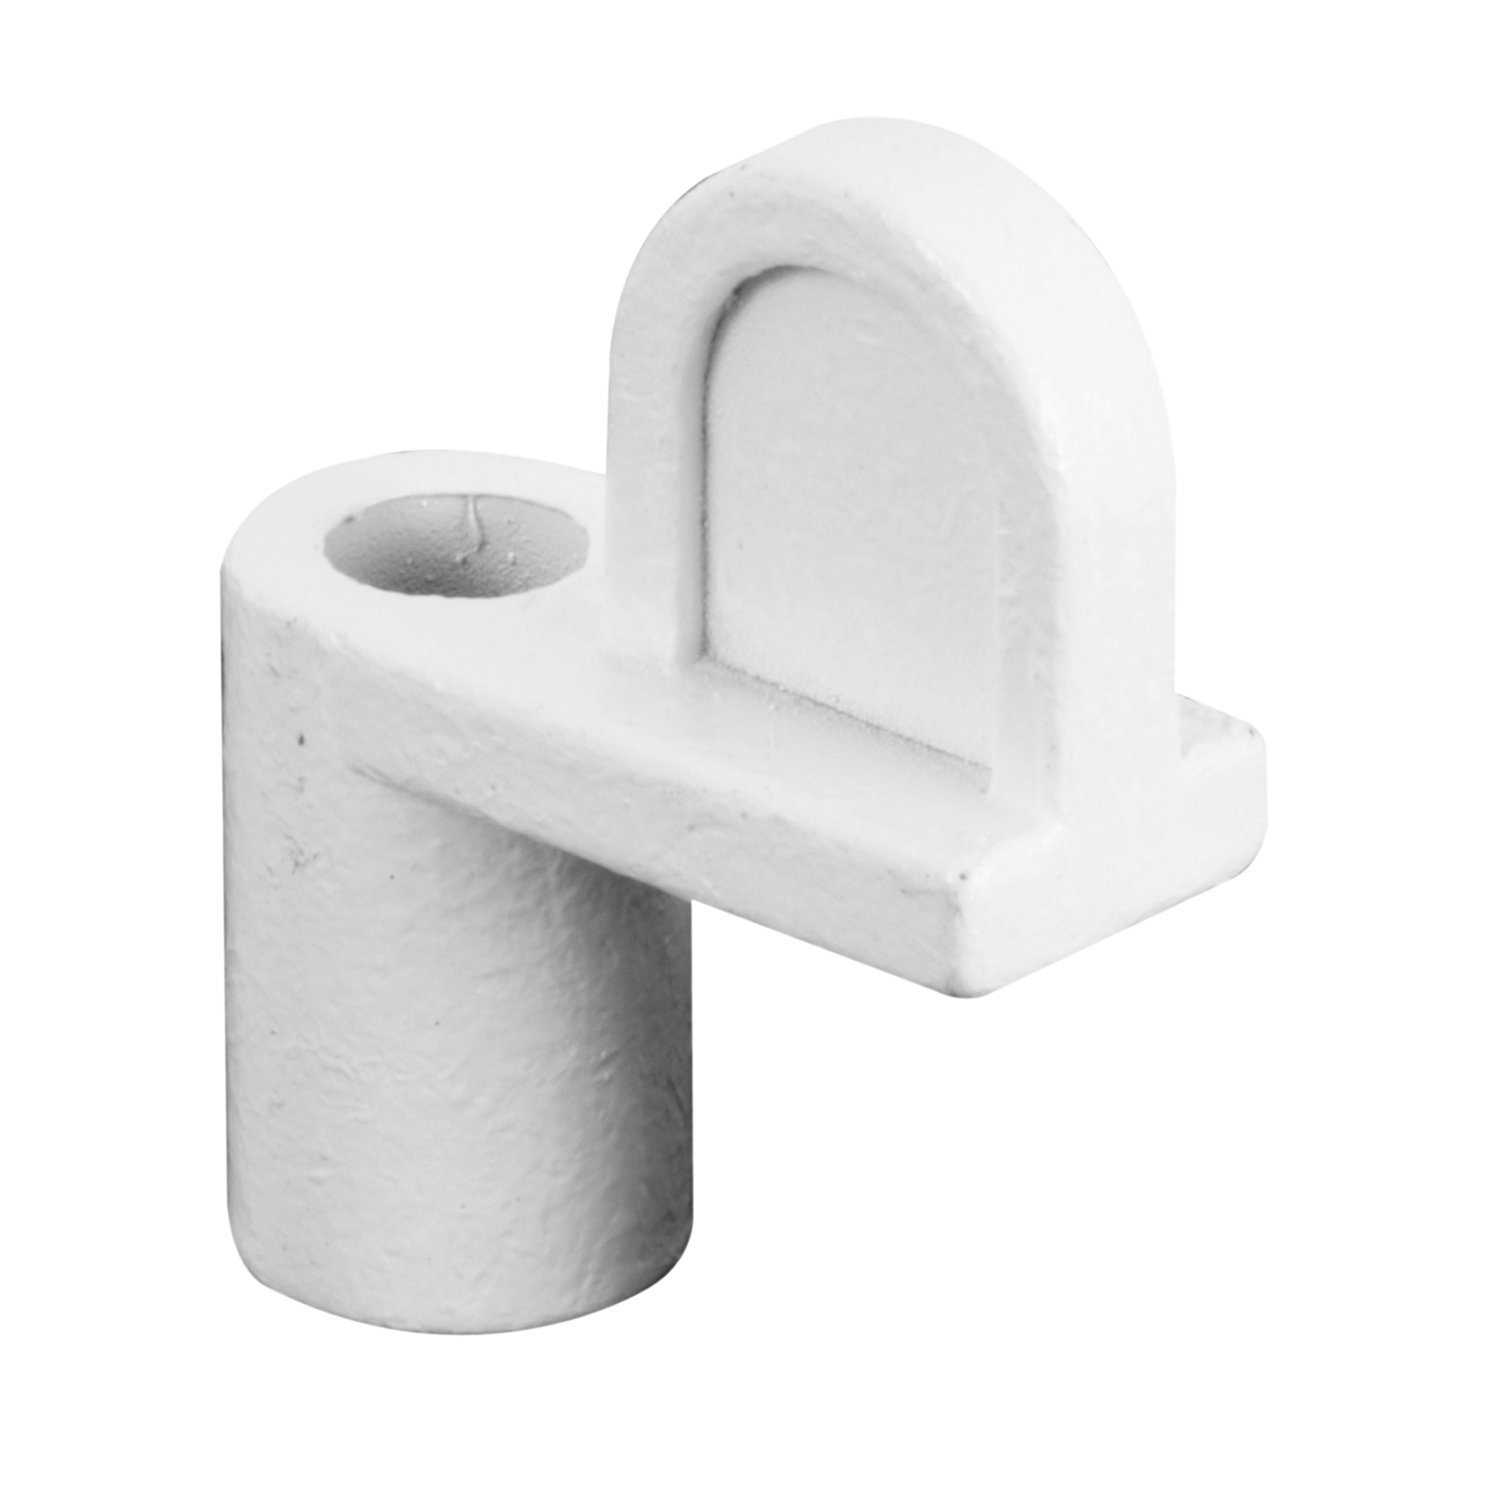 Prime-Line Products PL 14486 Diecast Screen Clip, 7/16'', White,(Pack of 25)